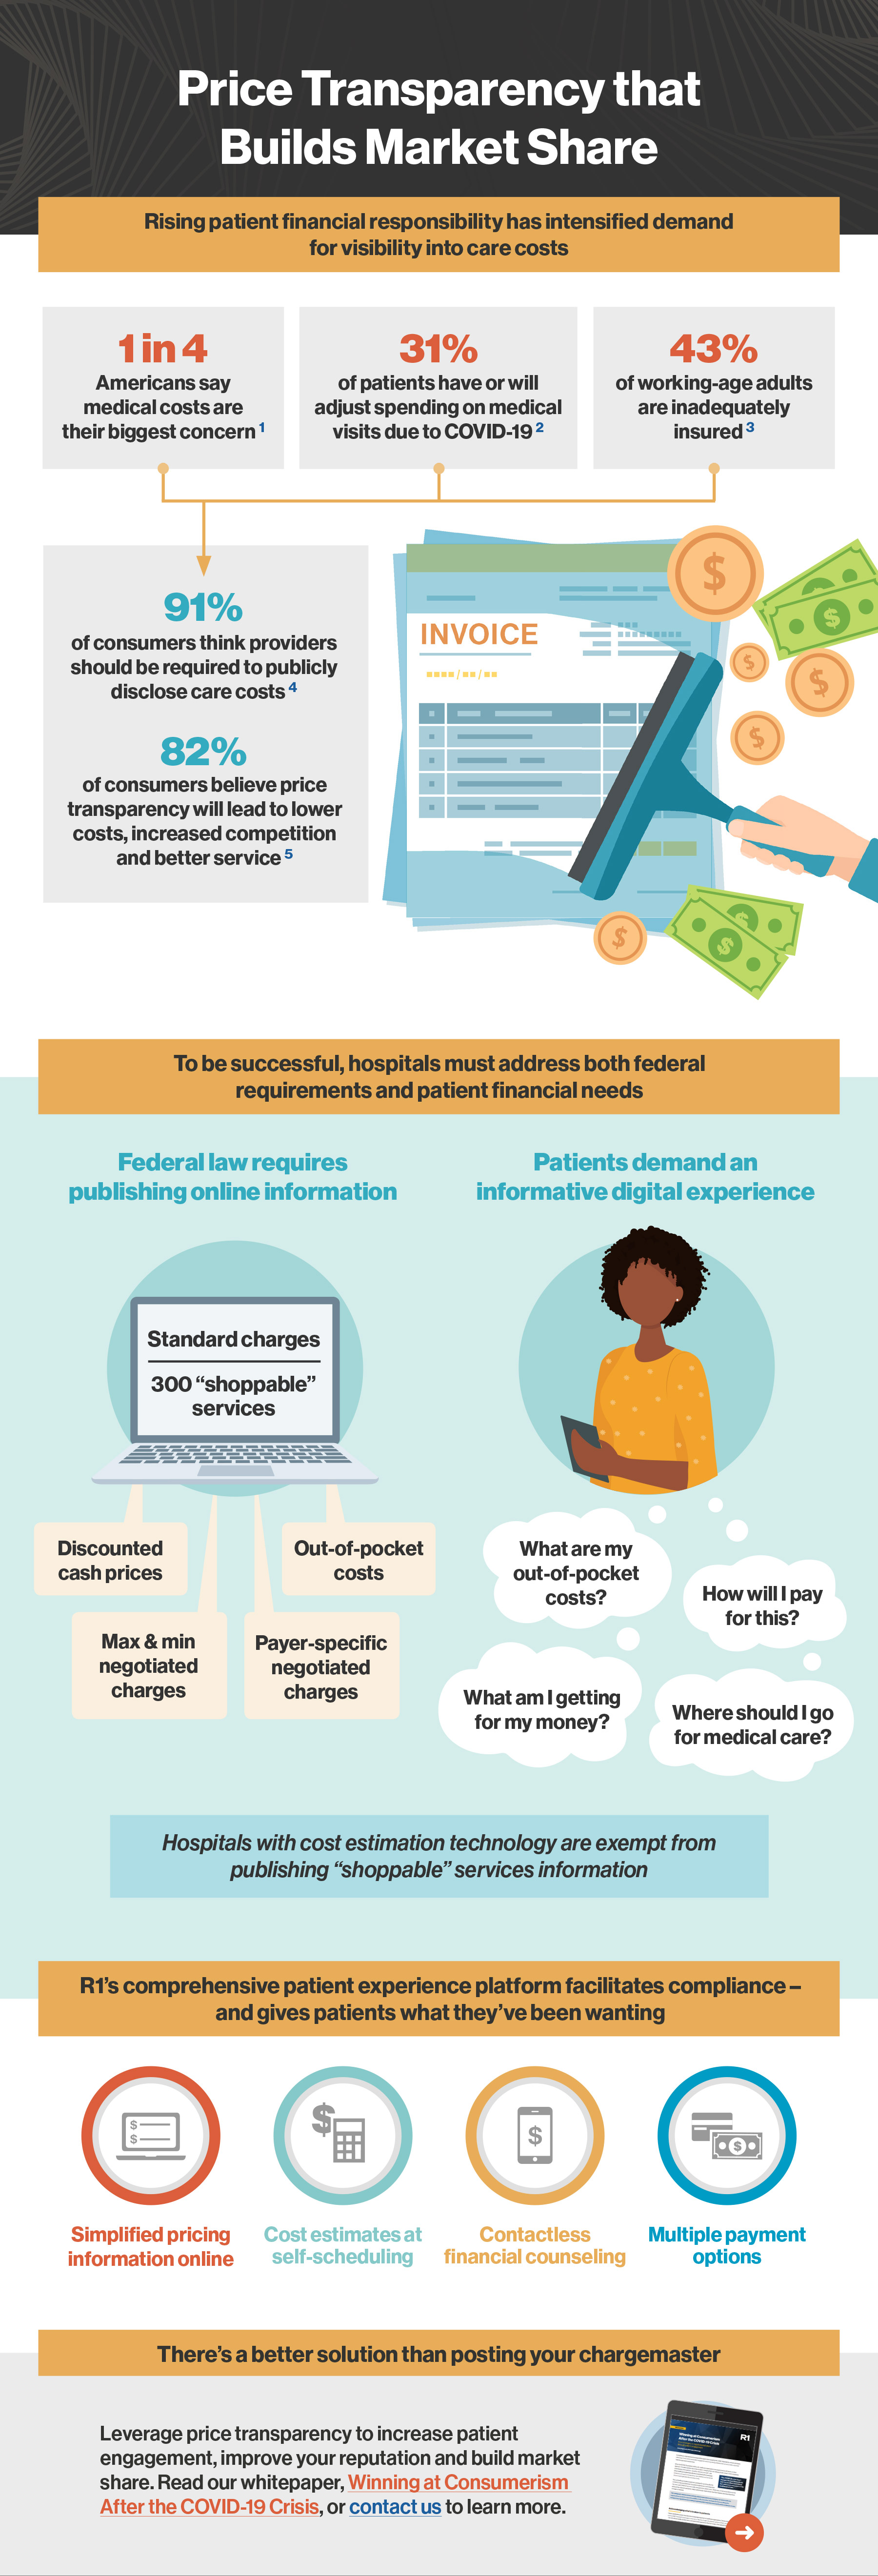 What you need to know about price transparency in healthcare